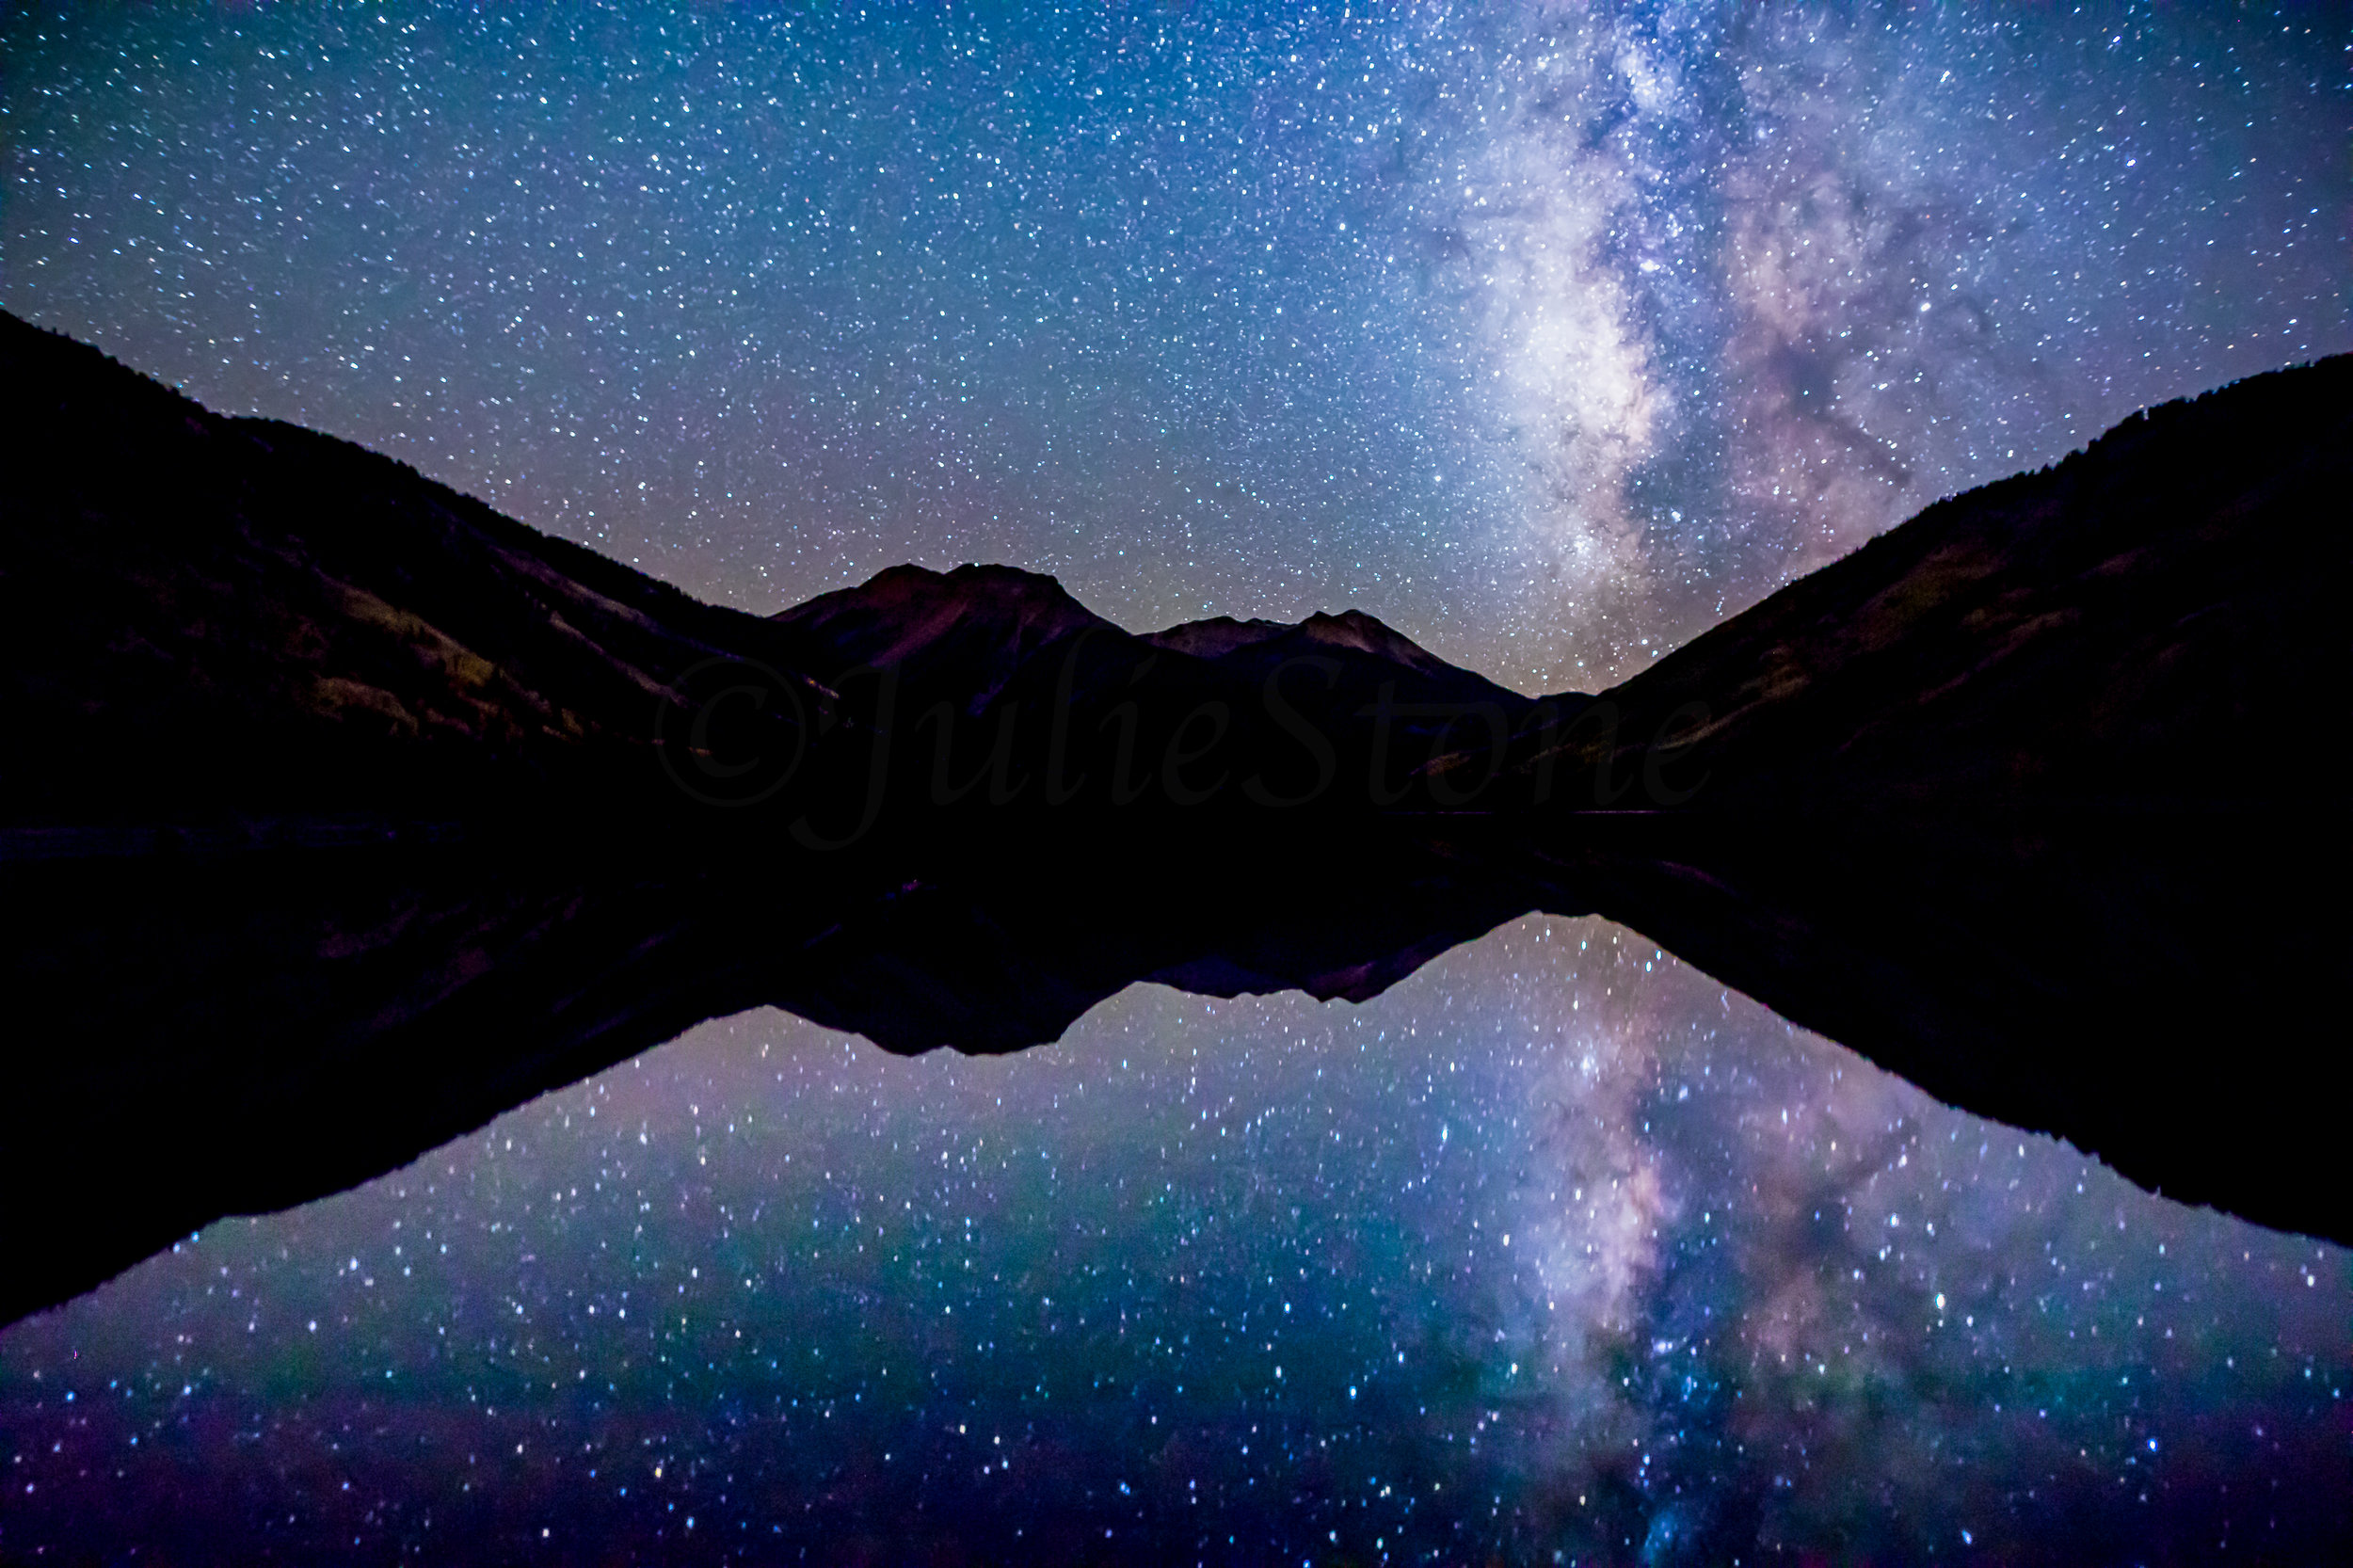 Milky Way Reflection over Red Mountain, Image # 1746